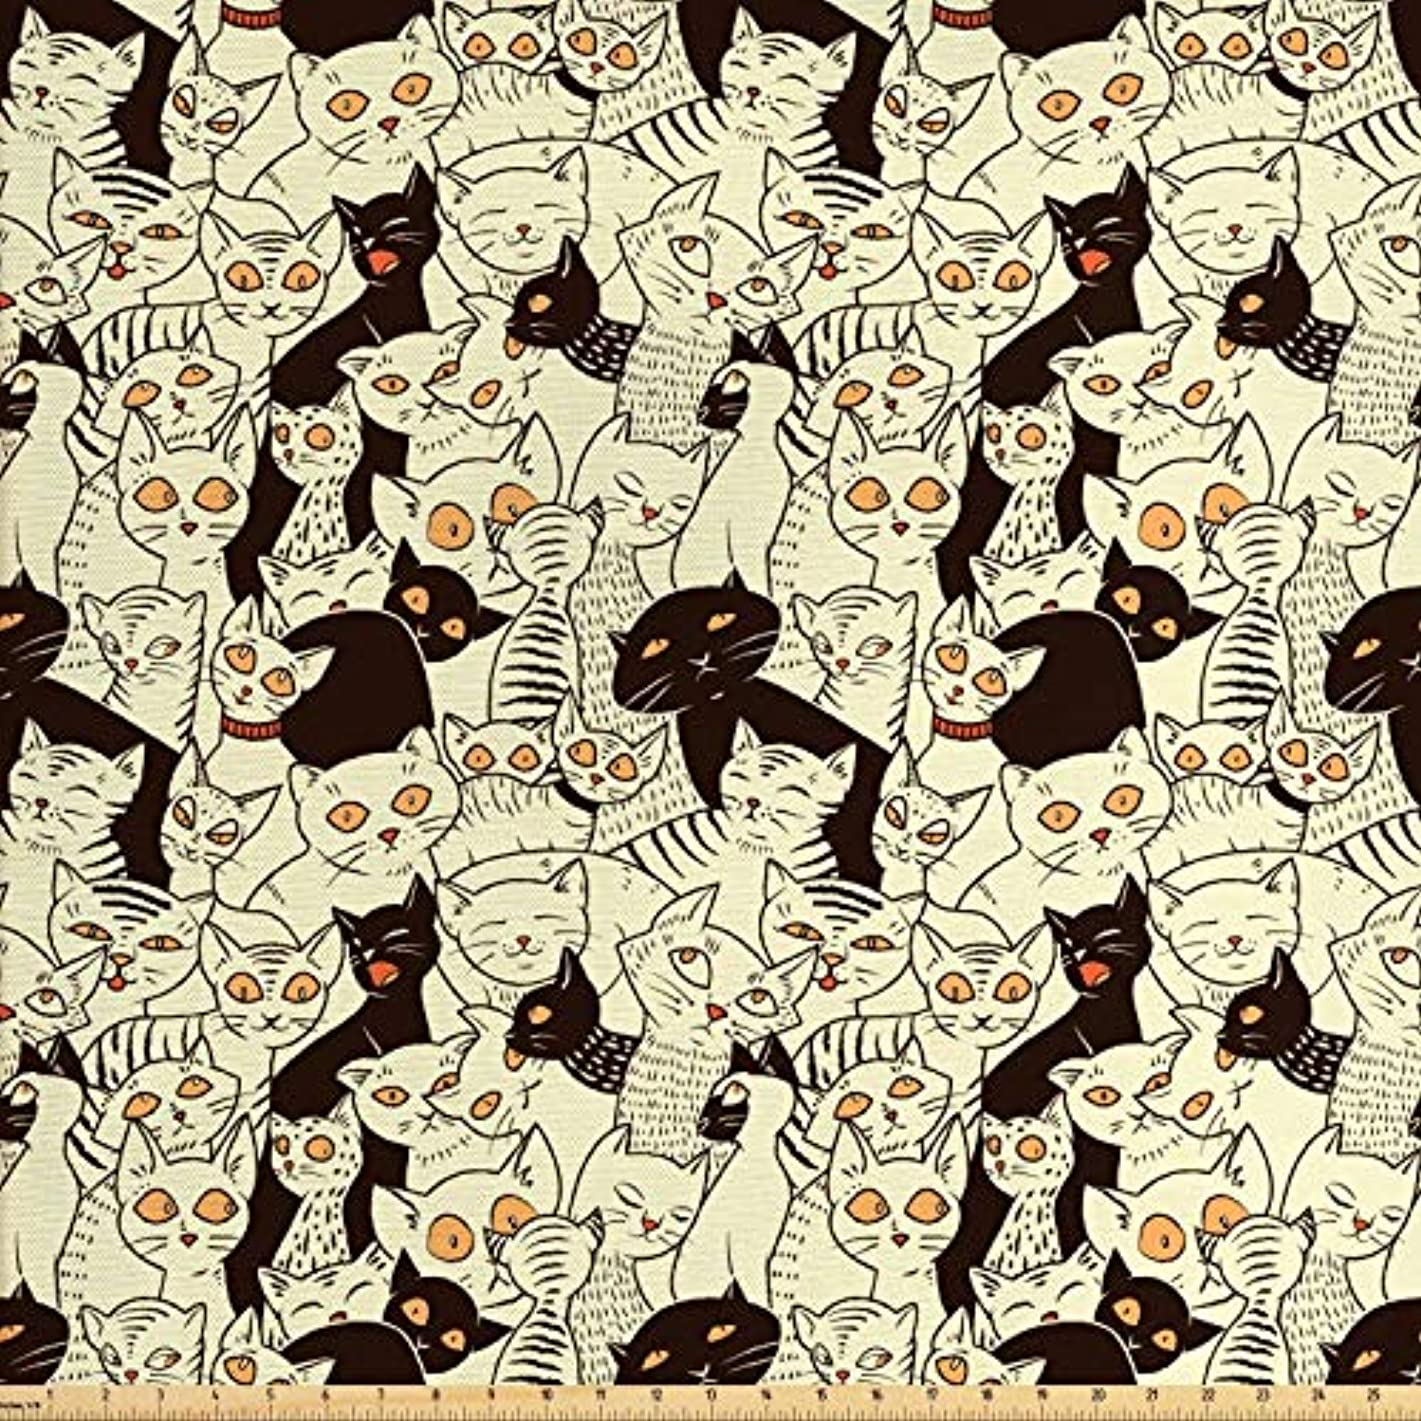 Lunarable Cat Fabric by The Yard, Modern Big Eyed Funk Style Kitties with Retro Influences Sweet Animal Graphic, Decorative Fabric for Upholstery and Home Accents, 1 Yard, Black Pale Yellow